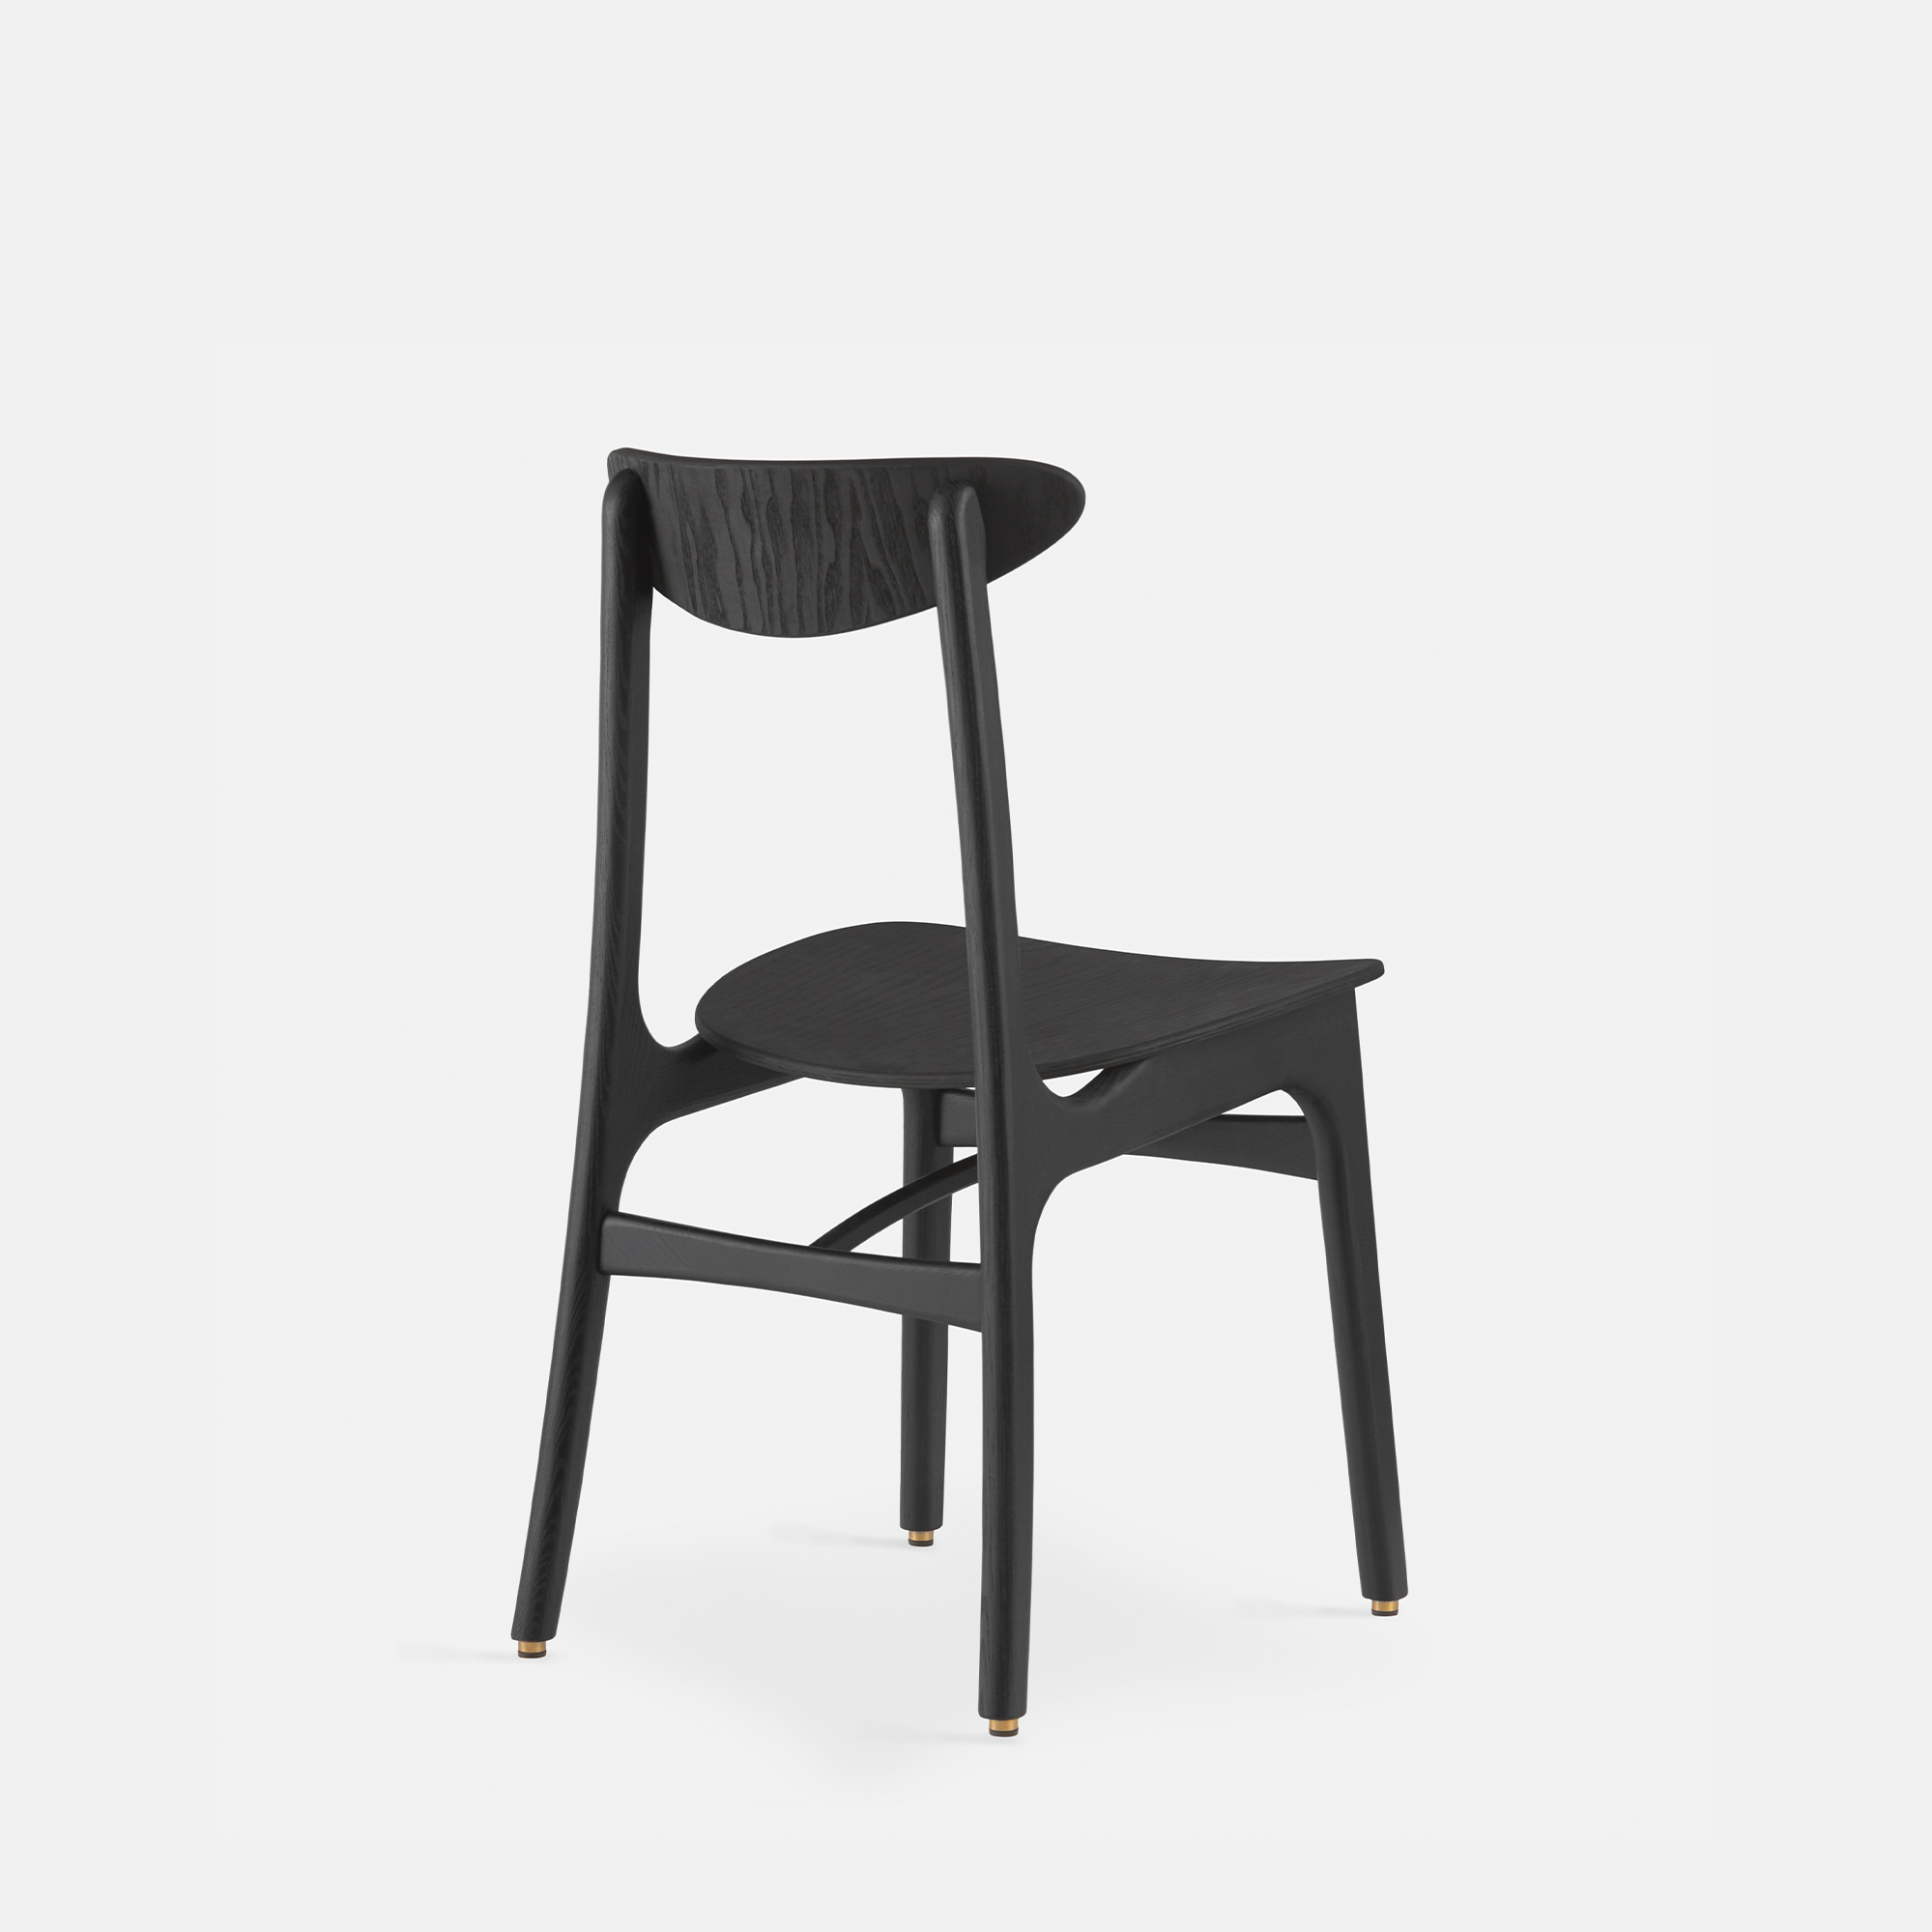 366-Concept-200-190-Chair-Timber-W04-back